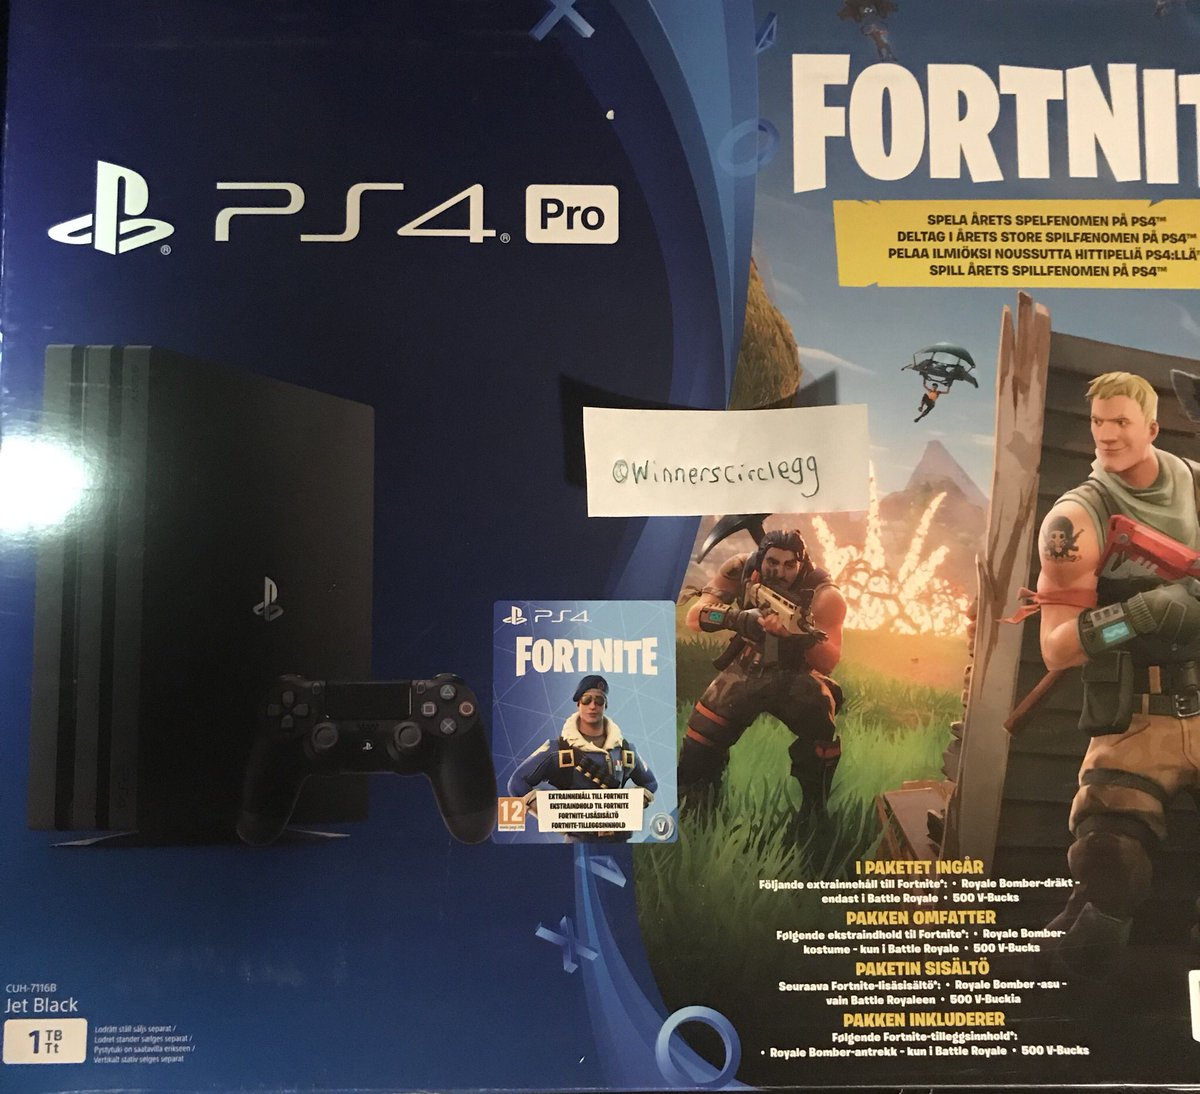 😍 Ps4 fortnite bundle code | Fortnite Redeem Code Download